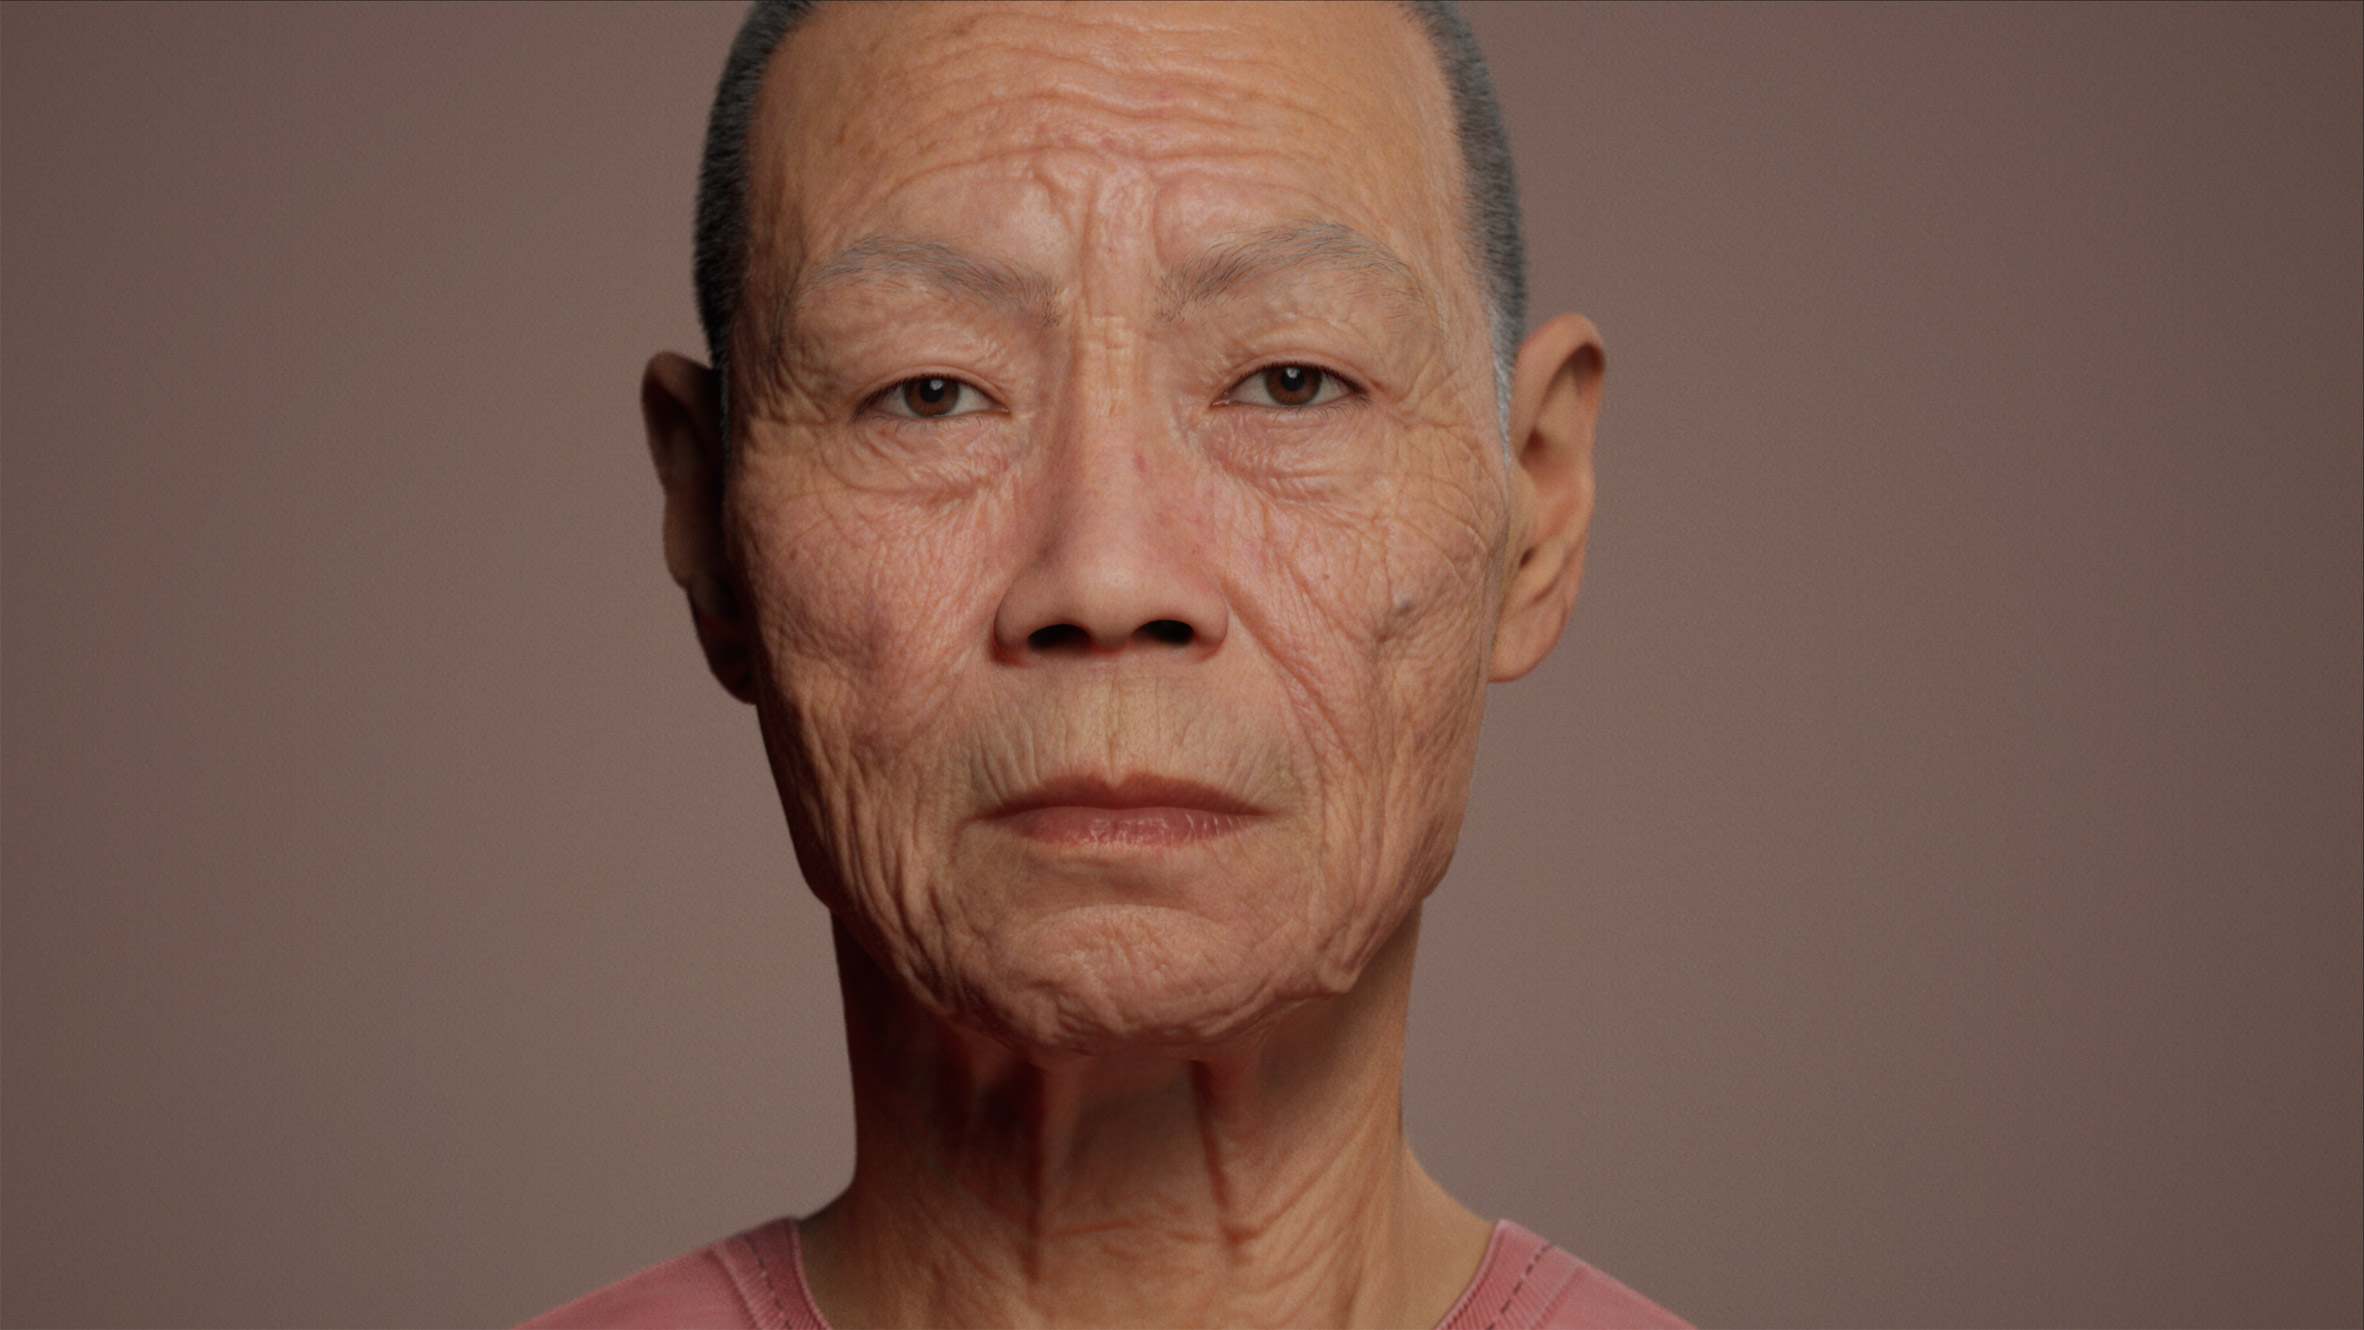 Portrait of digital human created using software by Epic Games and Unreal Engine